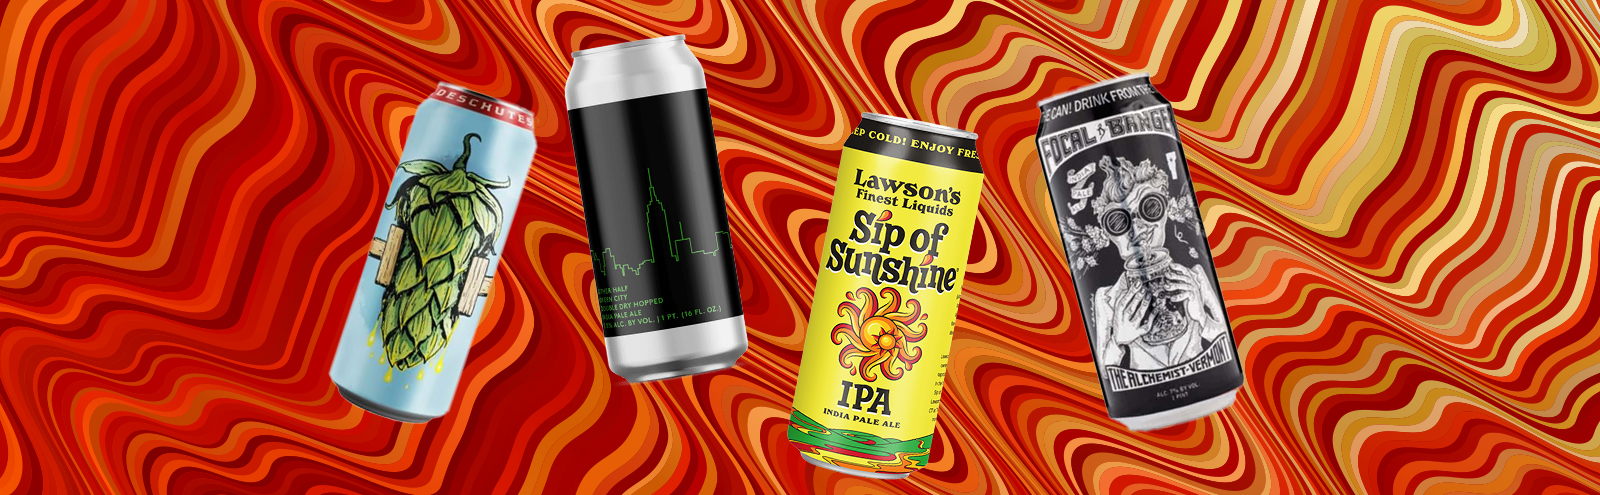 Here Are The Very Best Citra-Hopped IPAs You Can Buy At The Grocer